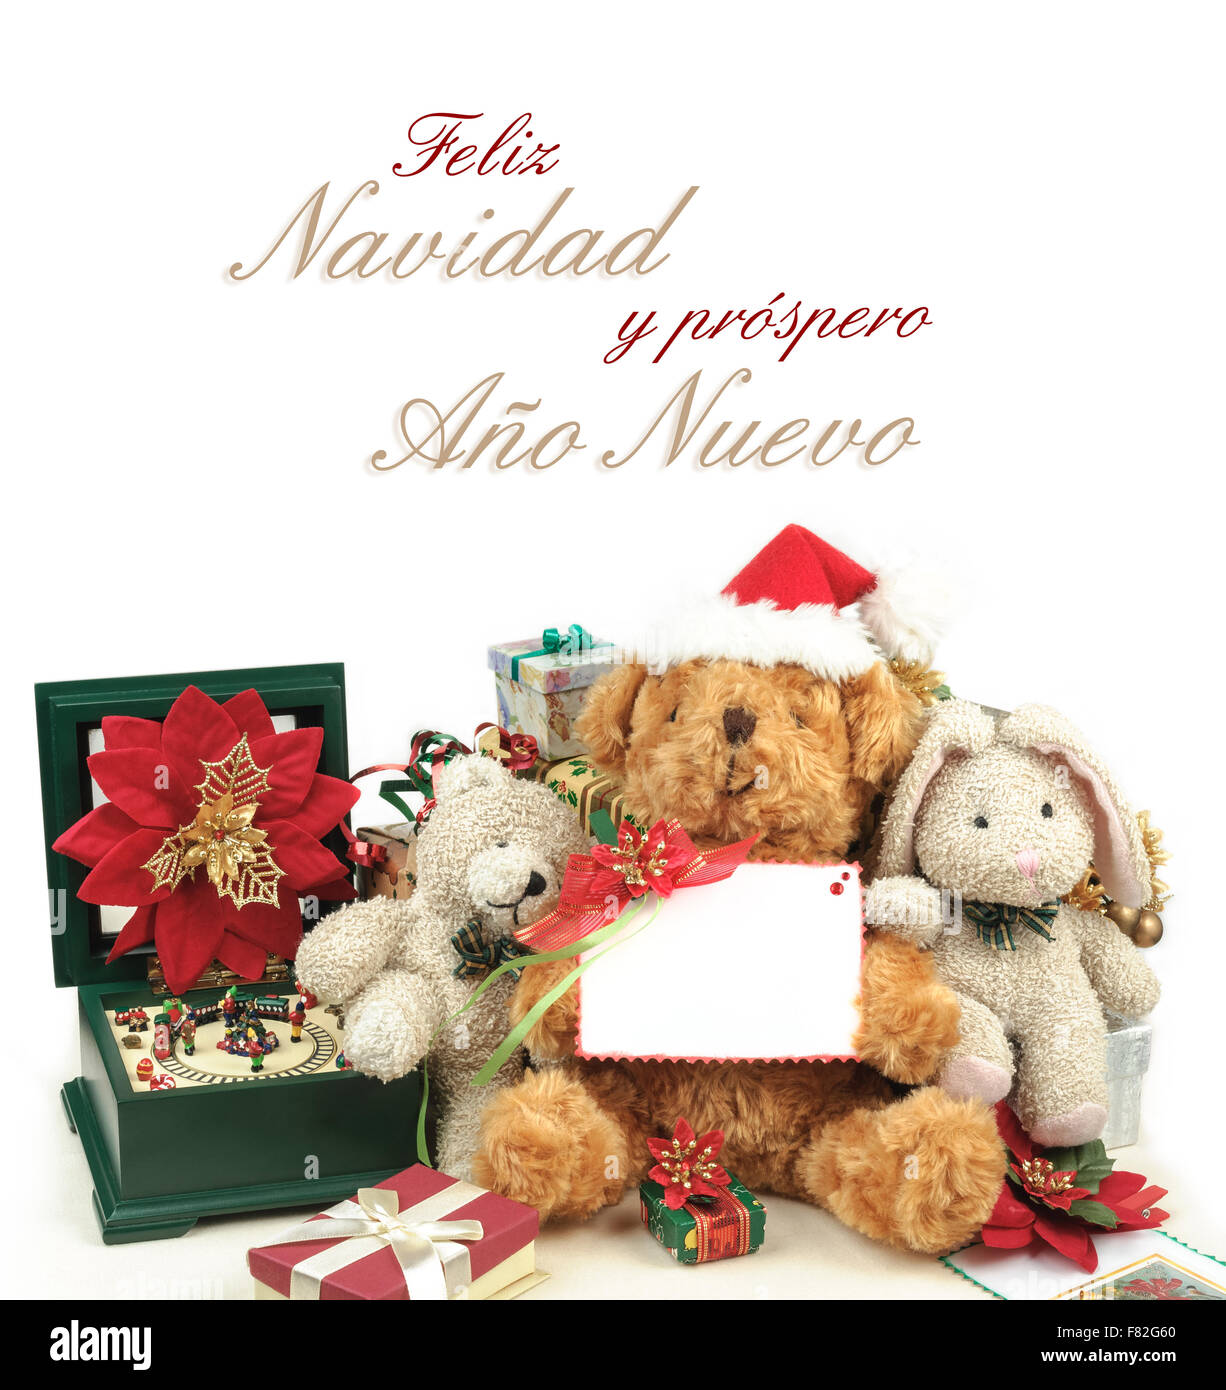 Christmas greeting card with teddy bear, toys & gifts, the text Feliz Navidad y prospero Año Nuevo and - Stock Image